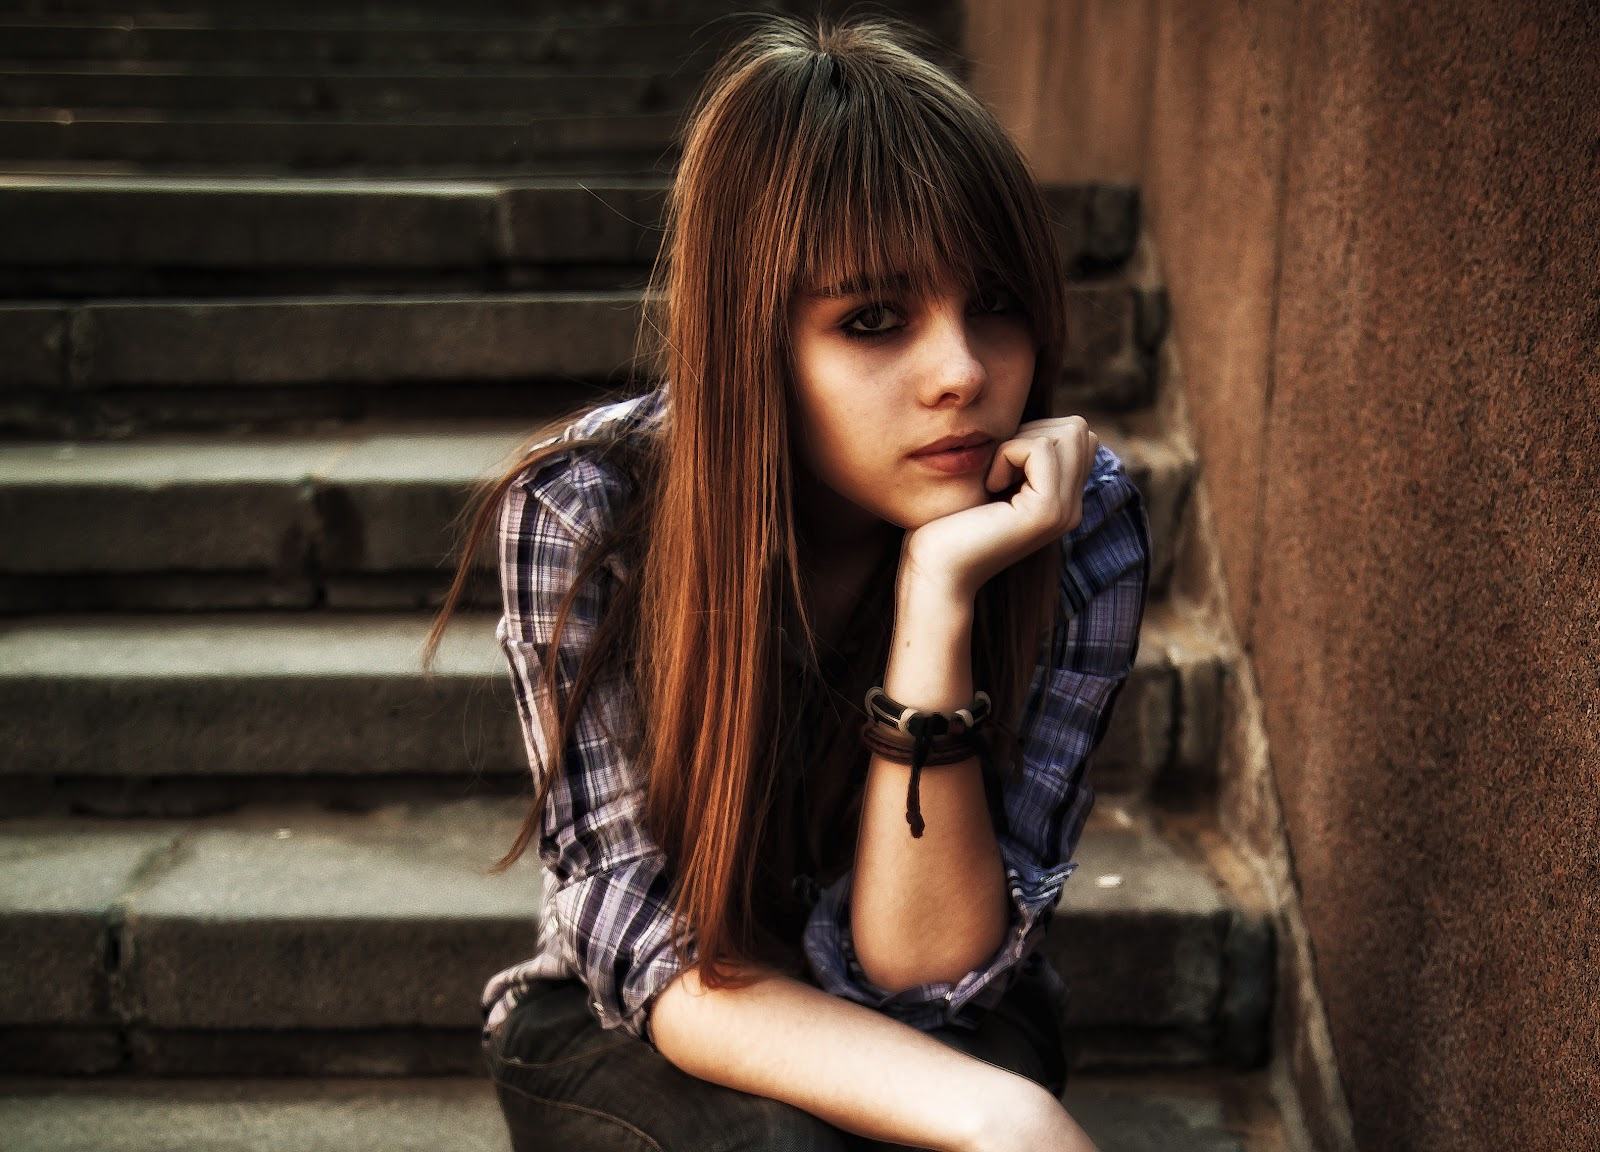 Hd alone girls wallpapers wallpaper202 - Wallpaper very sad girl ...